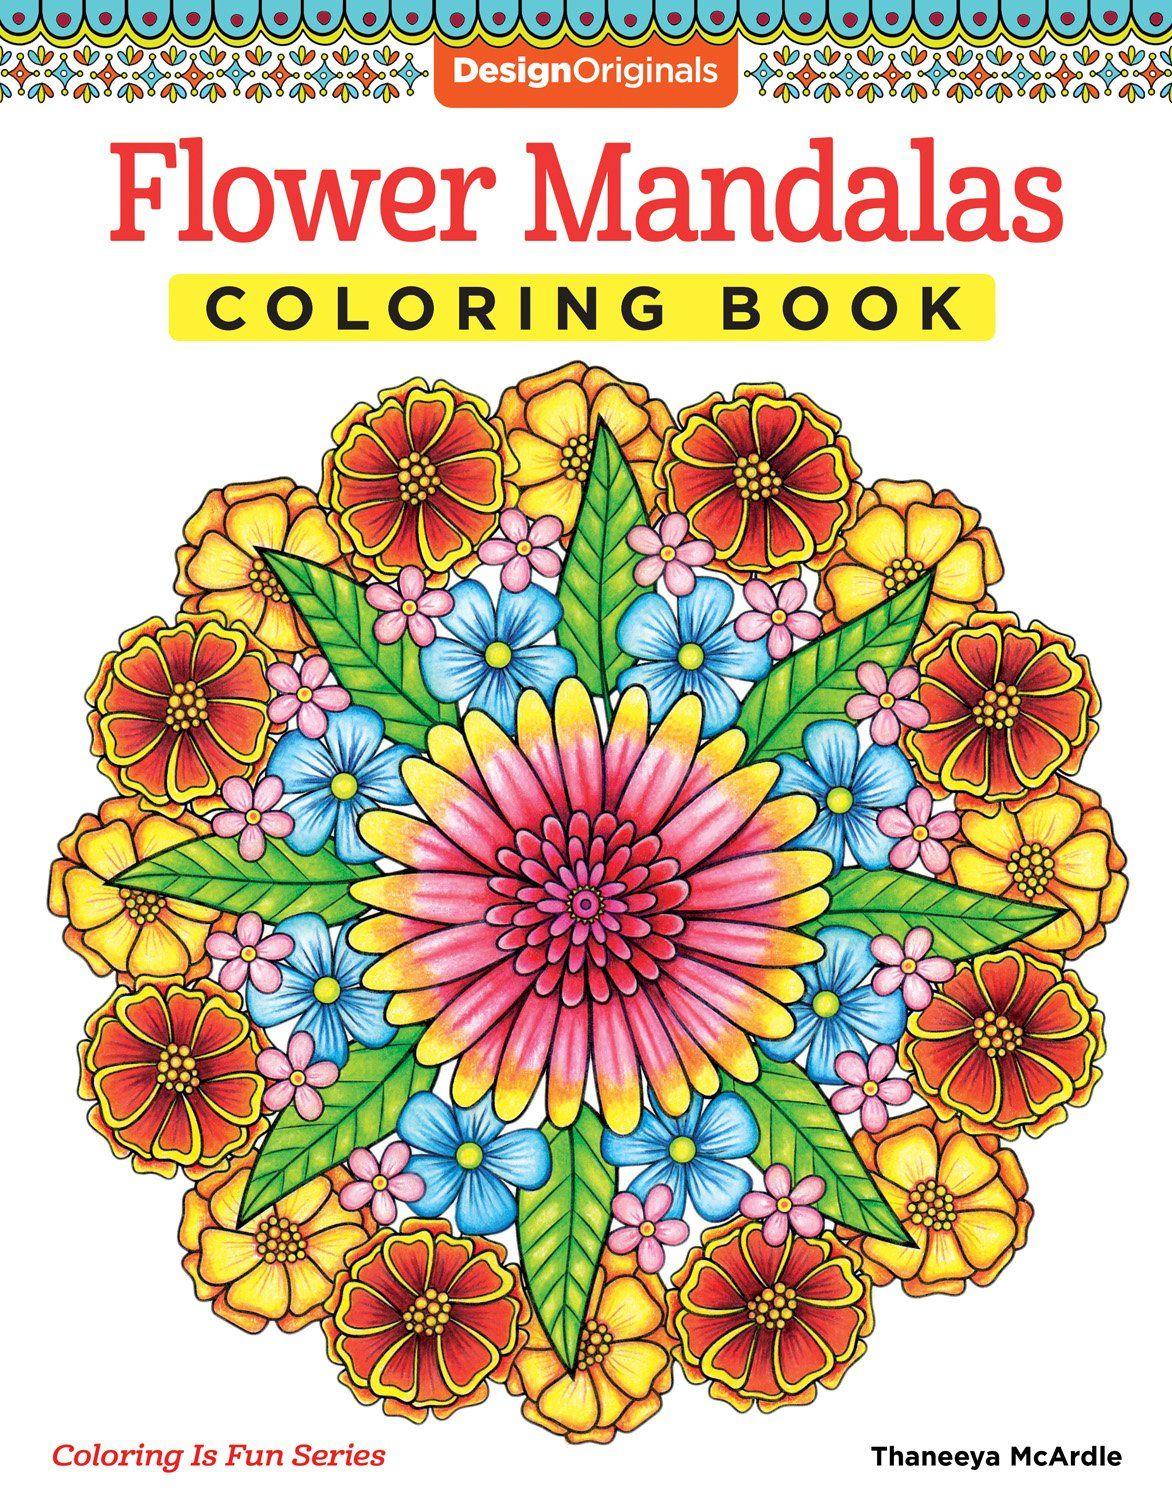 Amazon Flower Mandalas Coloring Book Is Fun Design Originals